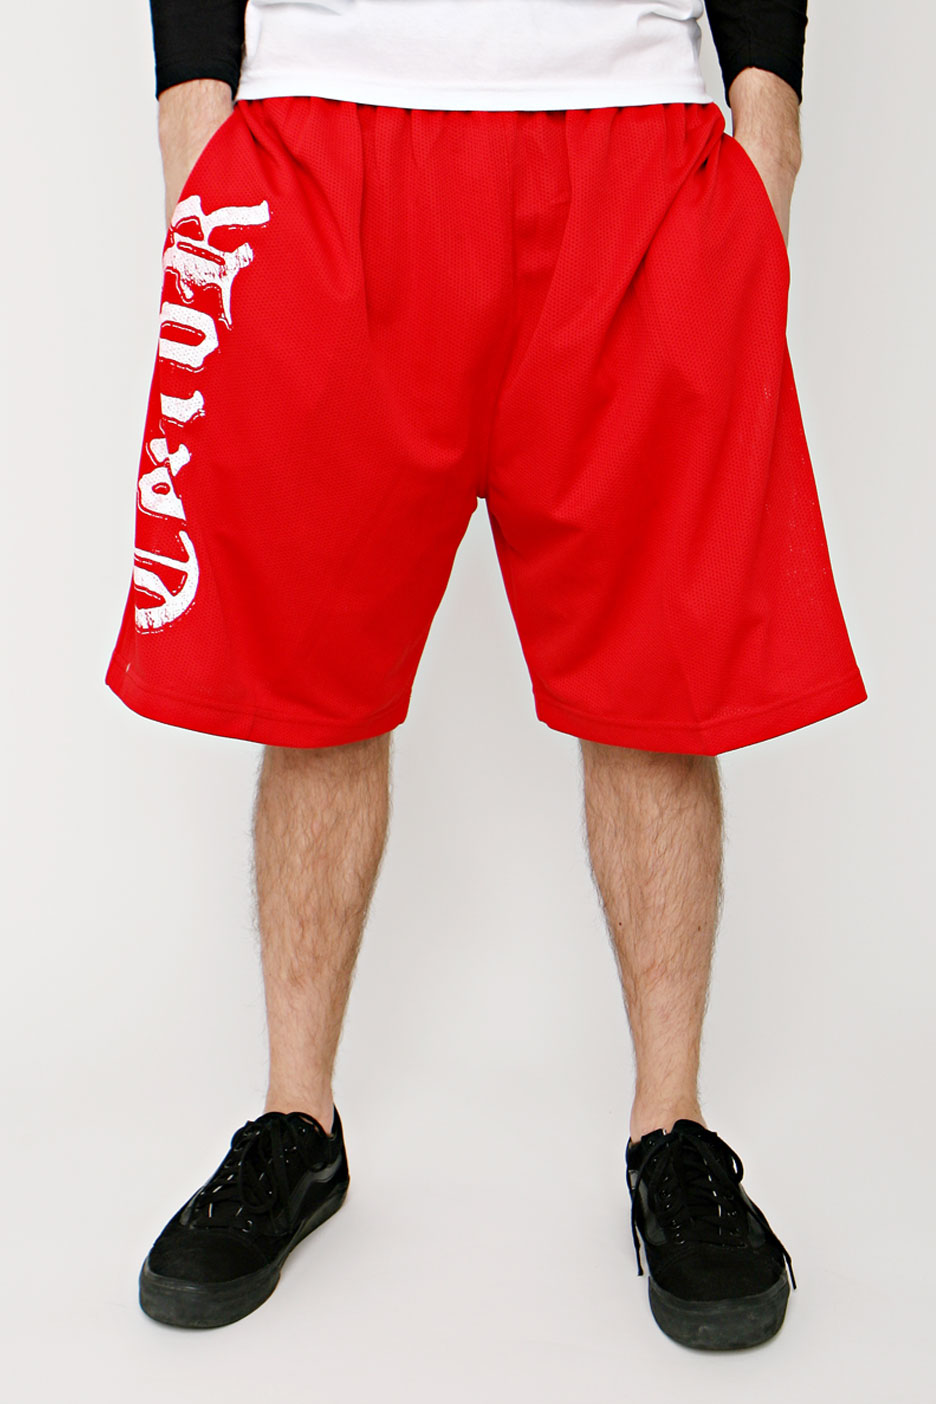 Terror - White Logo Red - Shorts - Impericon.com Worldwide